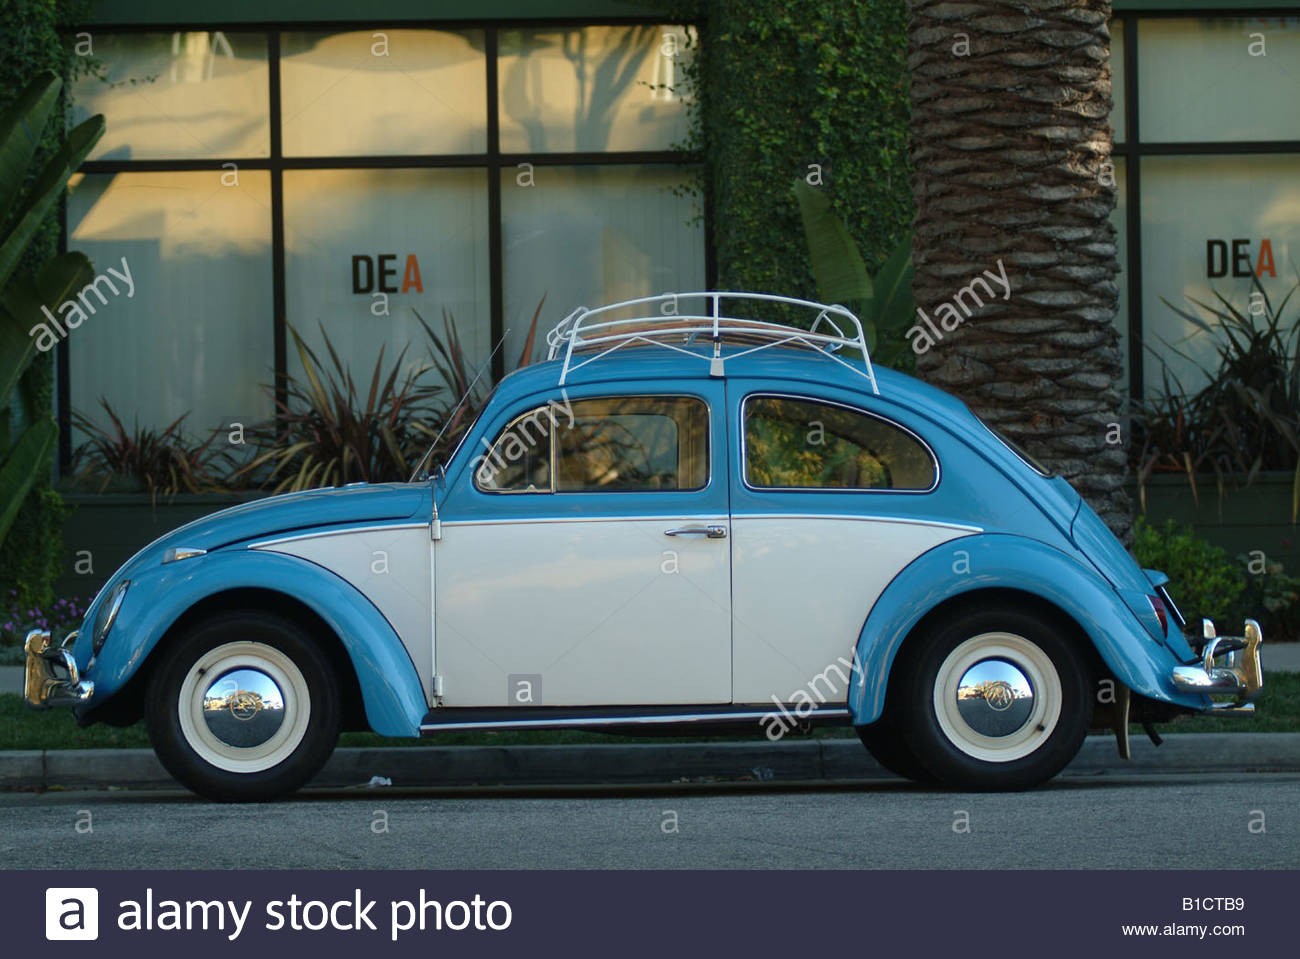 showroom volkswagen sold with sports vantage cars vw beetle bug sunroof